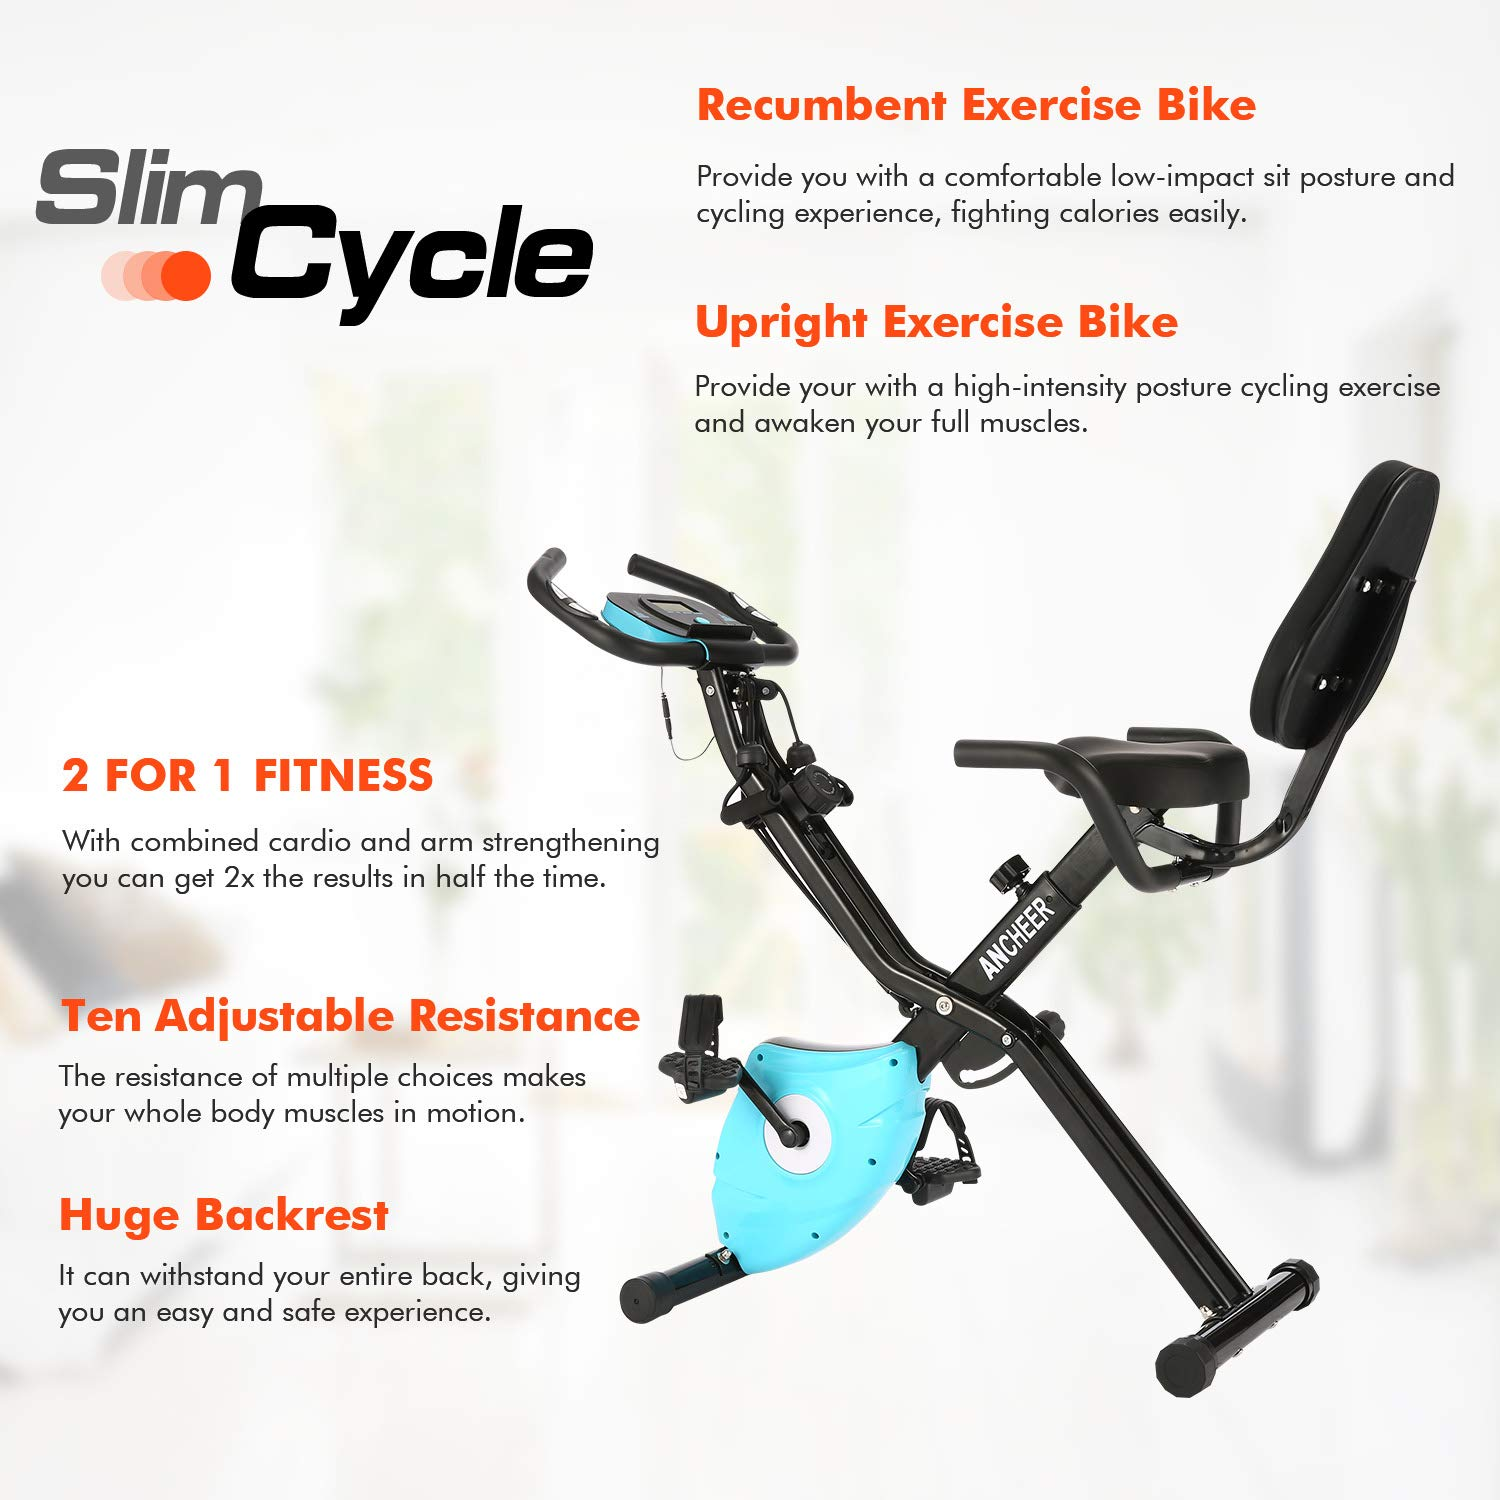 ANCHEER 2 in1 Folding Exercise Bike, Slim Cycle Indoor Stationary Bike with 10-Level Adjustable Magnetic Resistance and Arm Training Bands (Blue) by ANCHEER (Image #1)